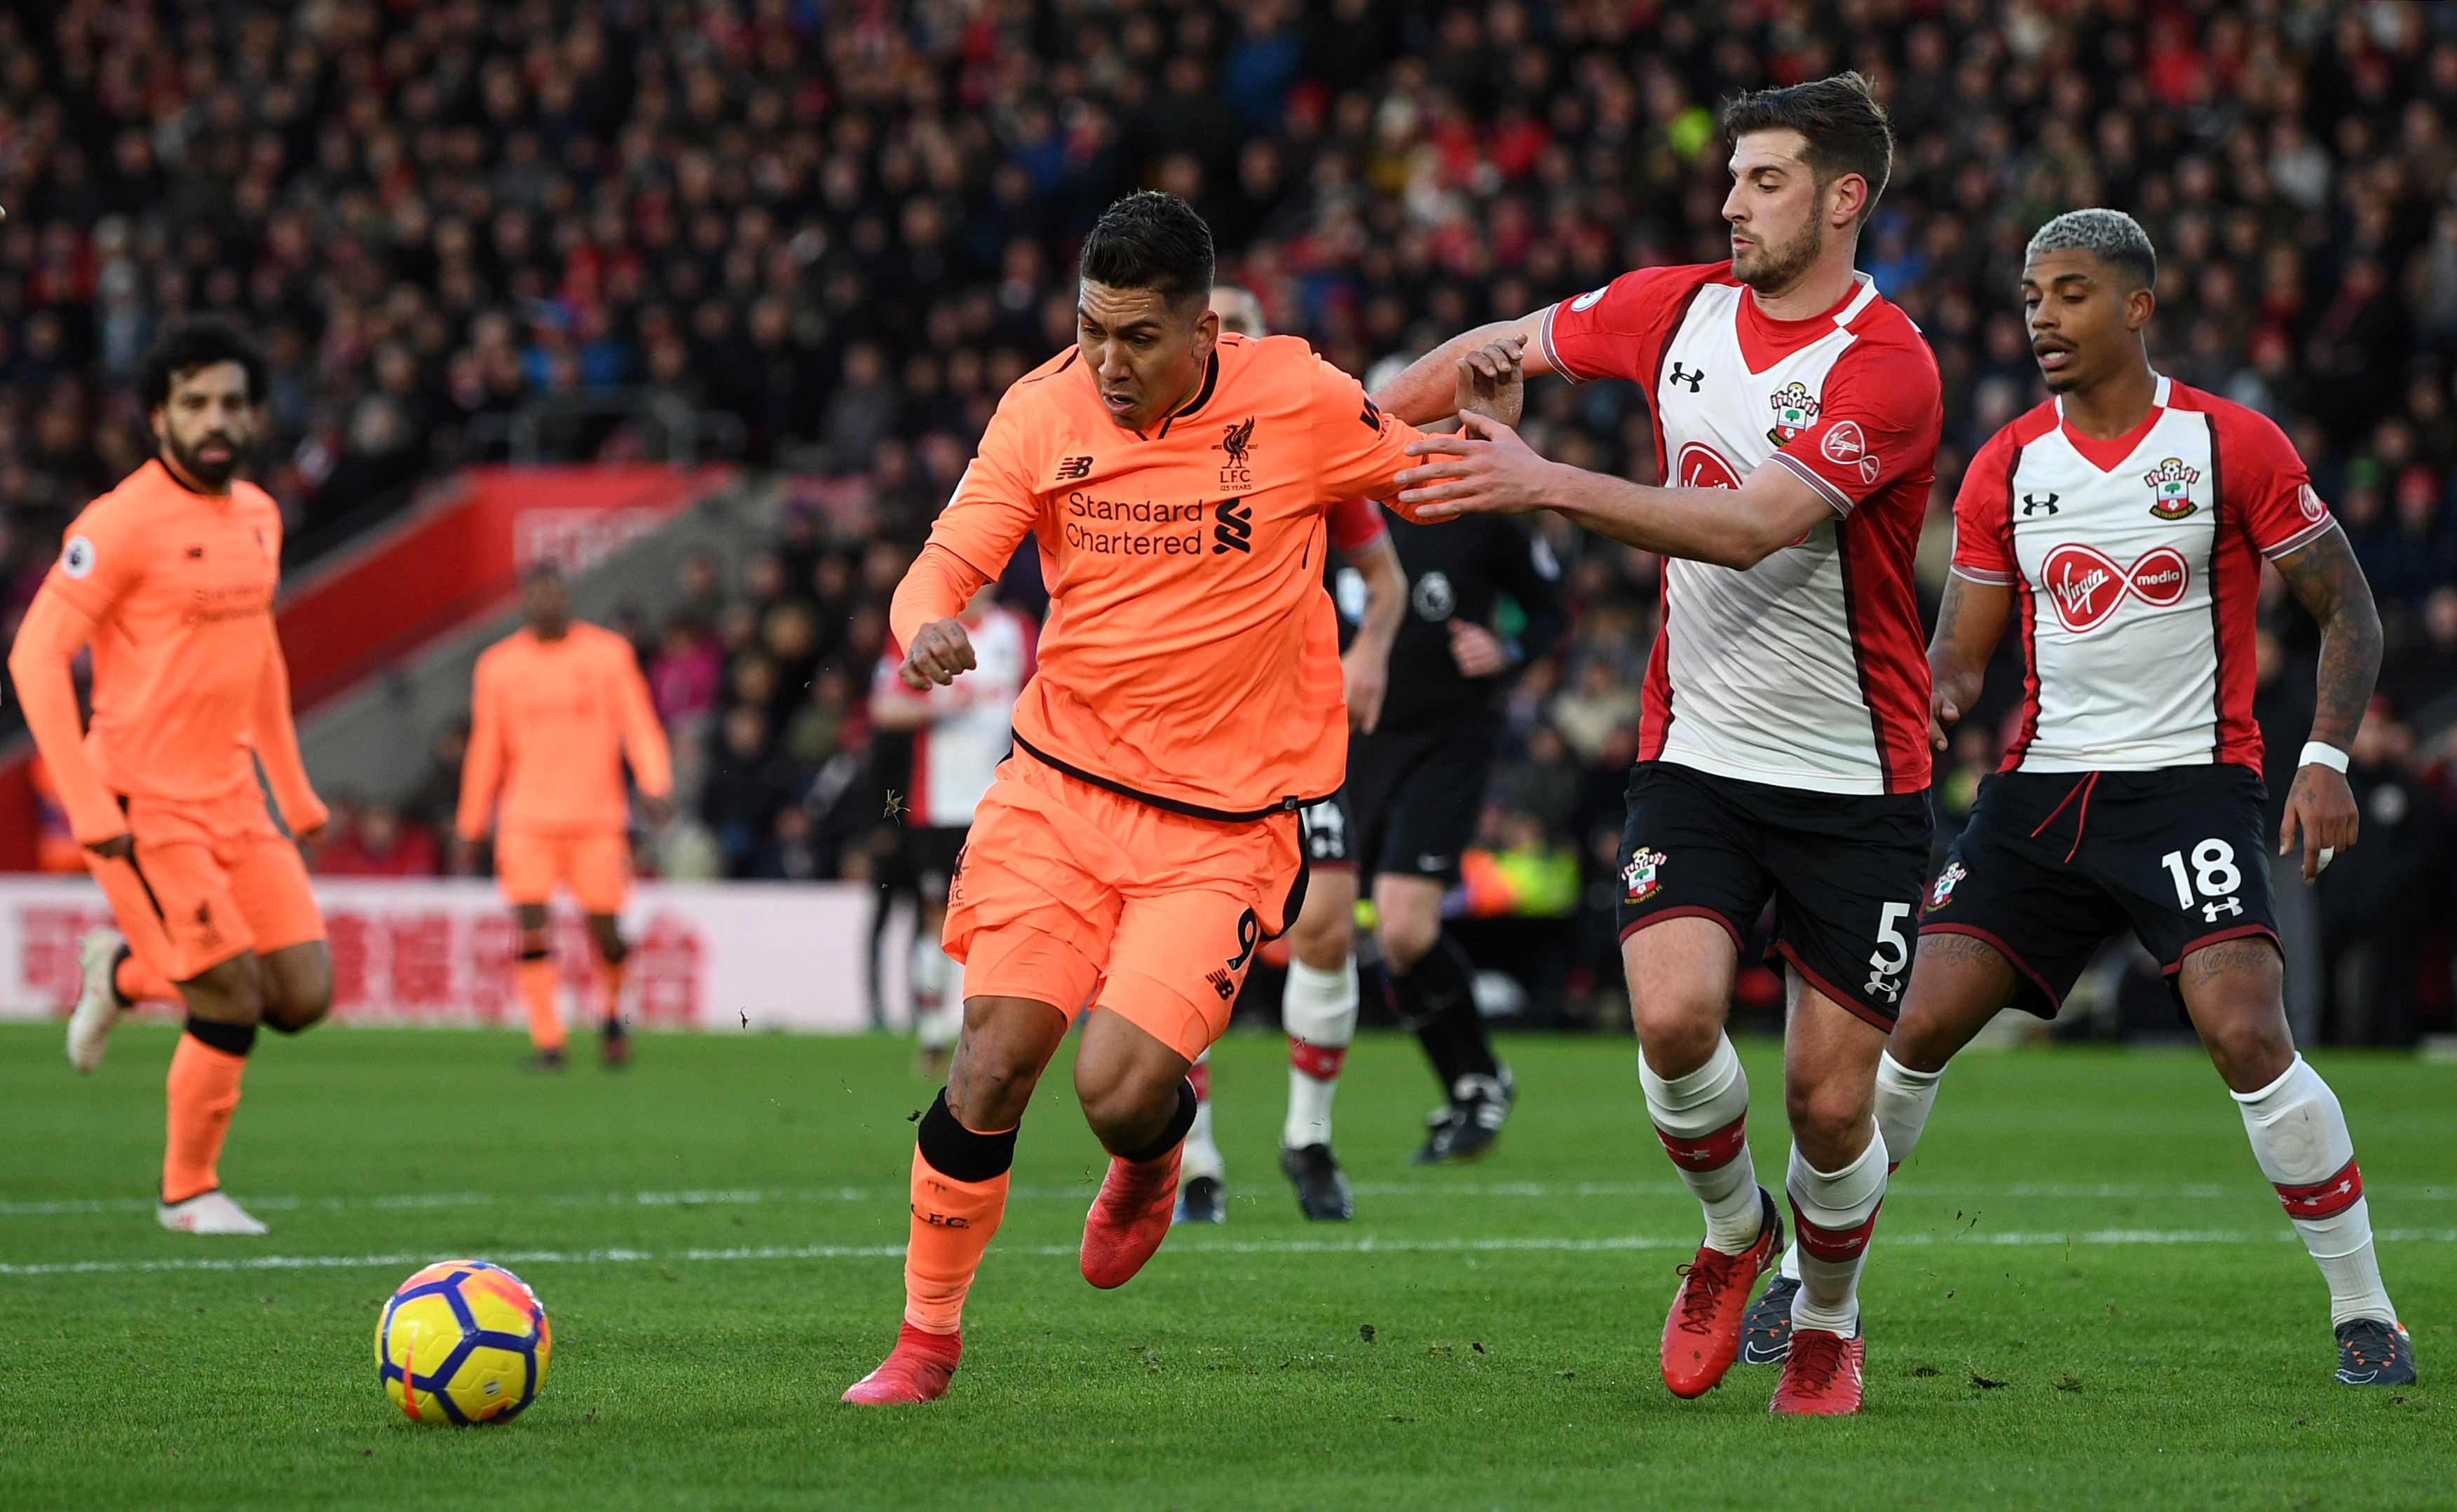 southampton vs liverpool - photo #22